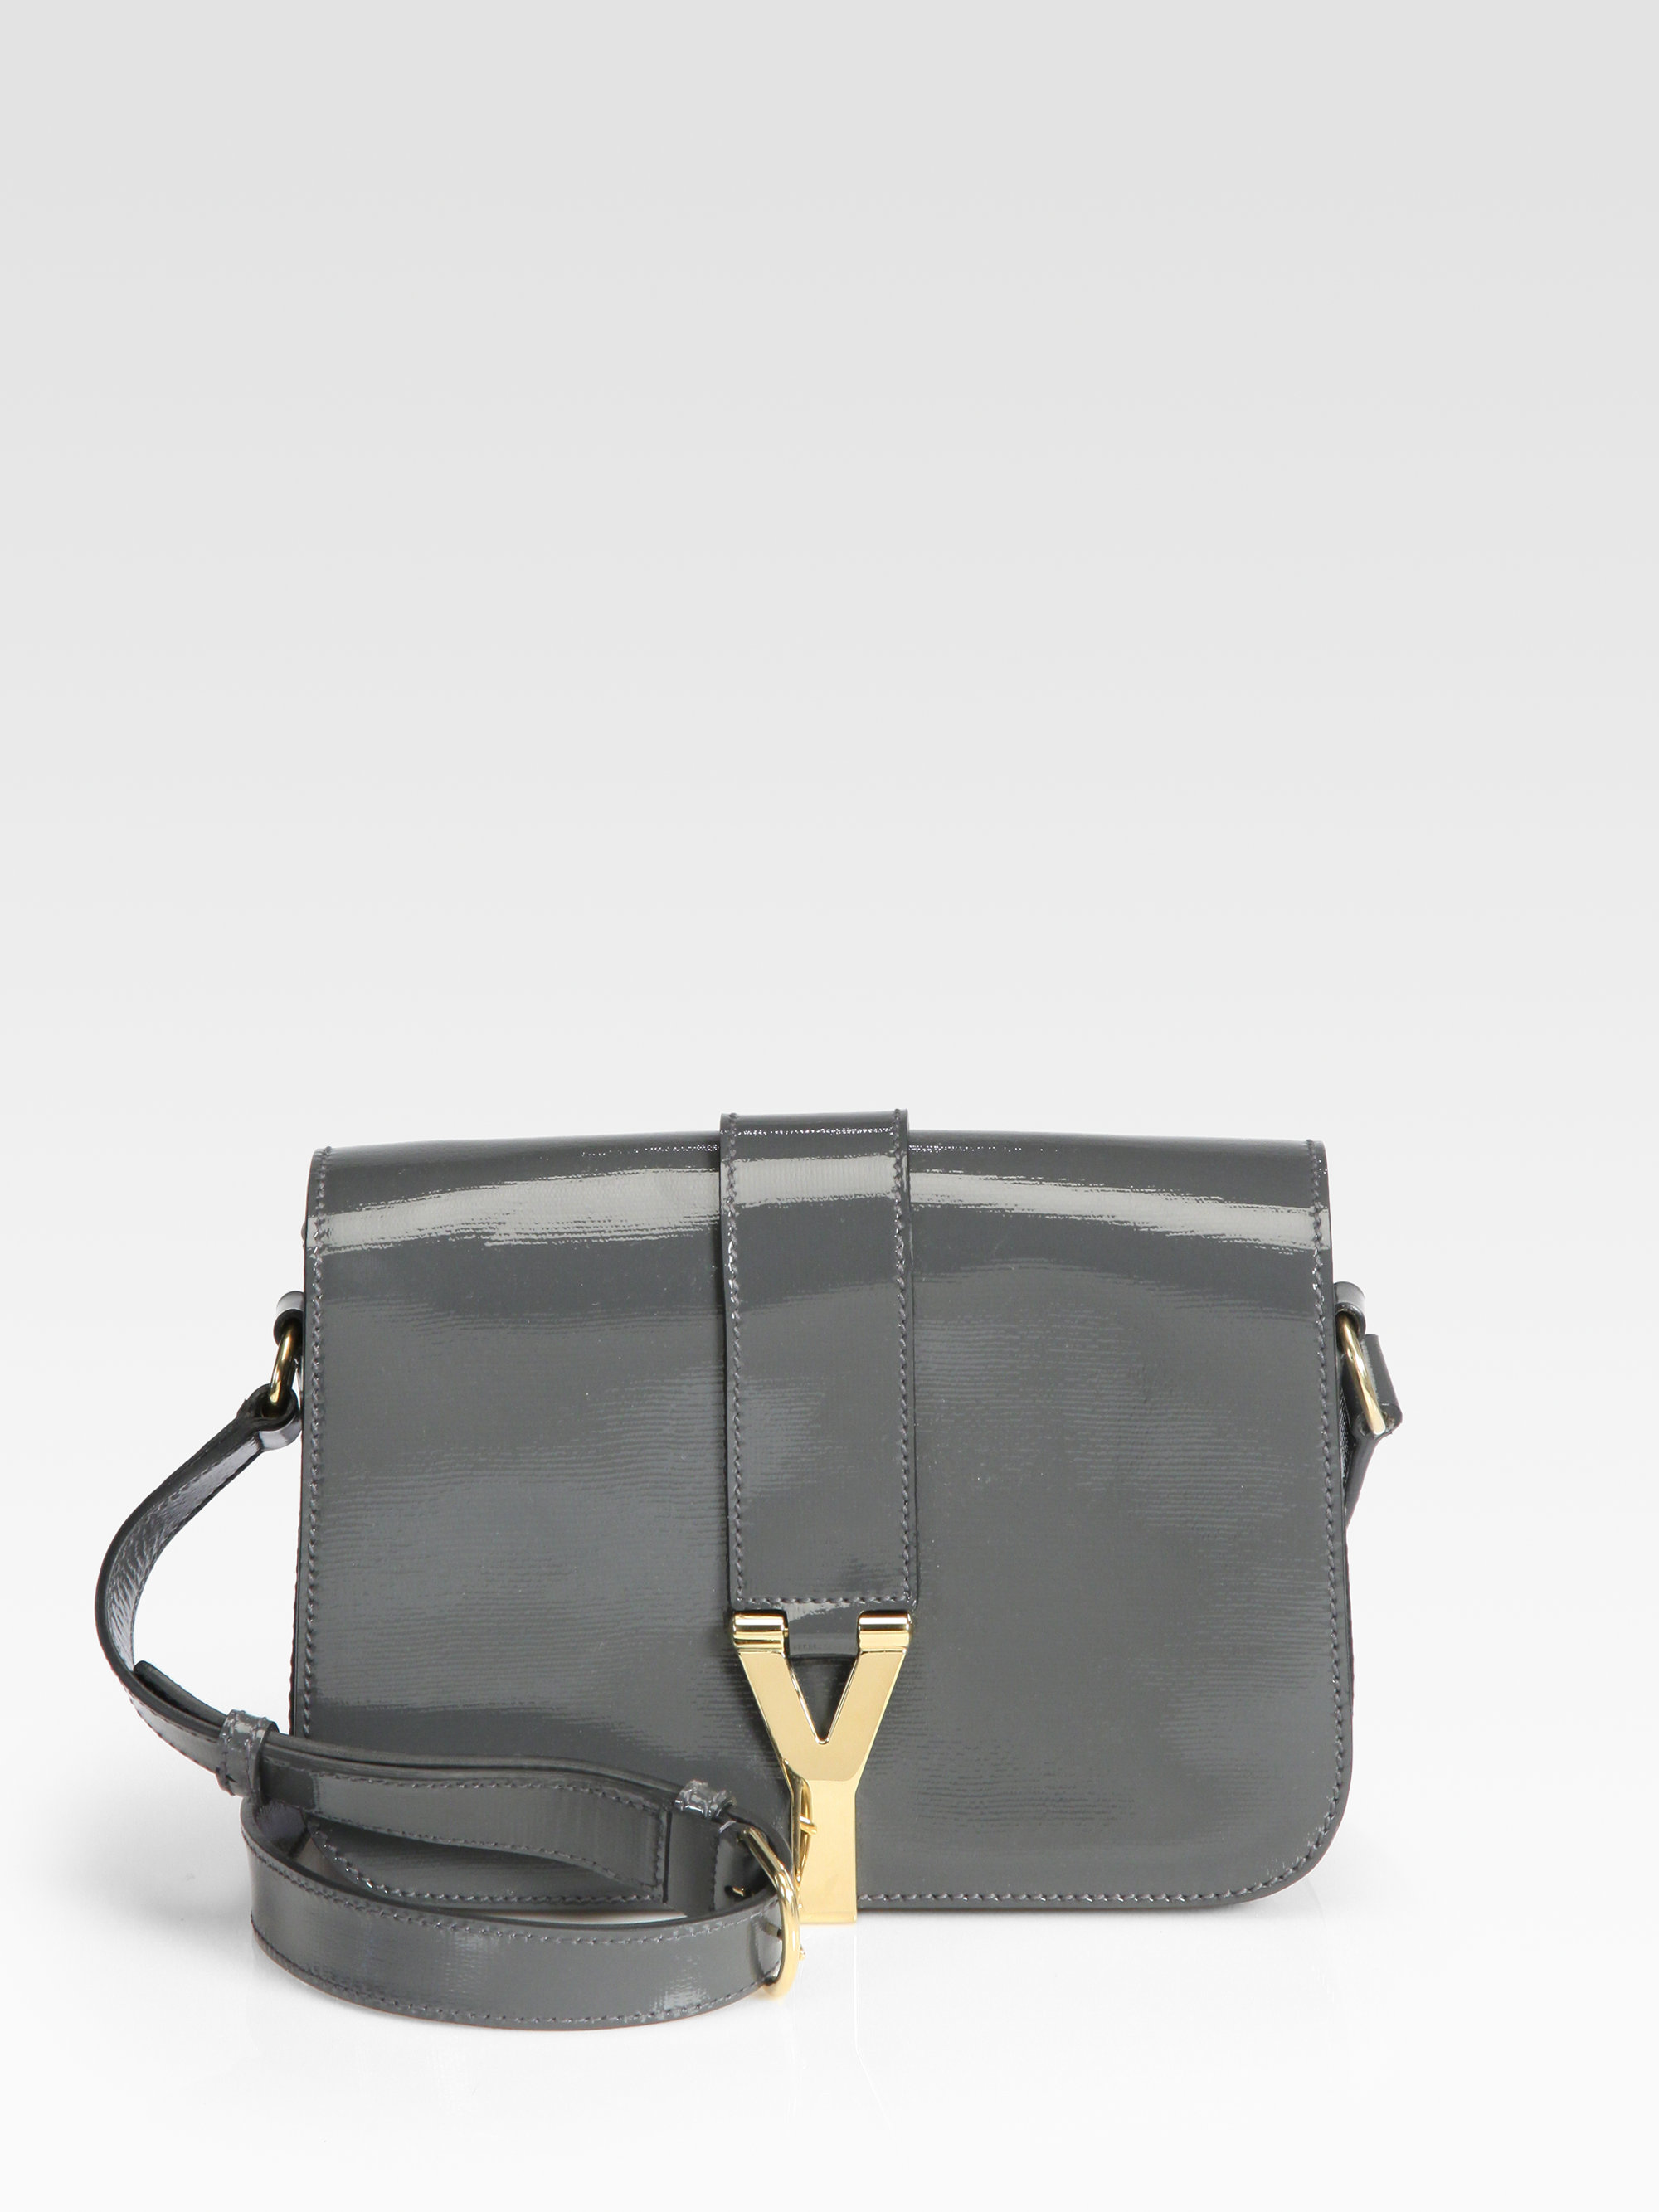 Saint laurent Ysl Chyc Medium Patent Leather Flap Bag in Gray ...